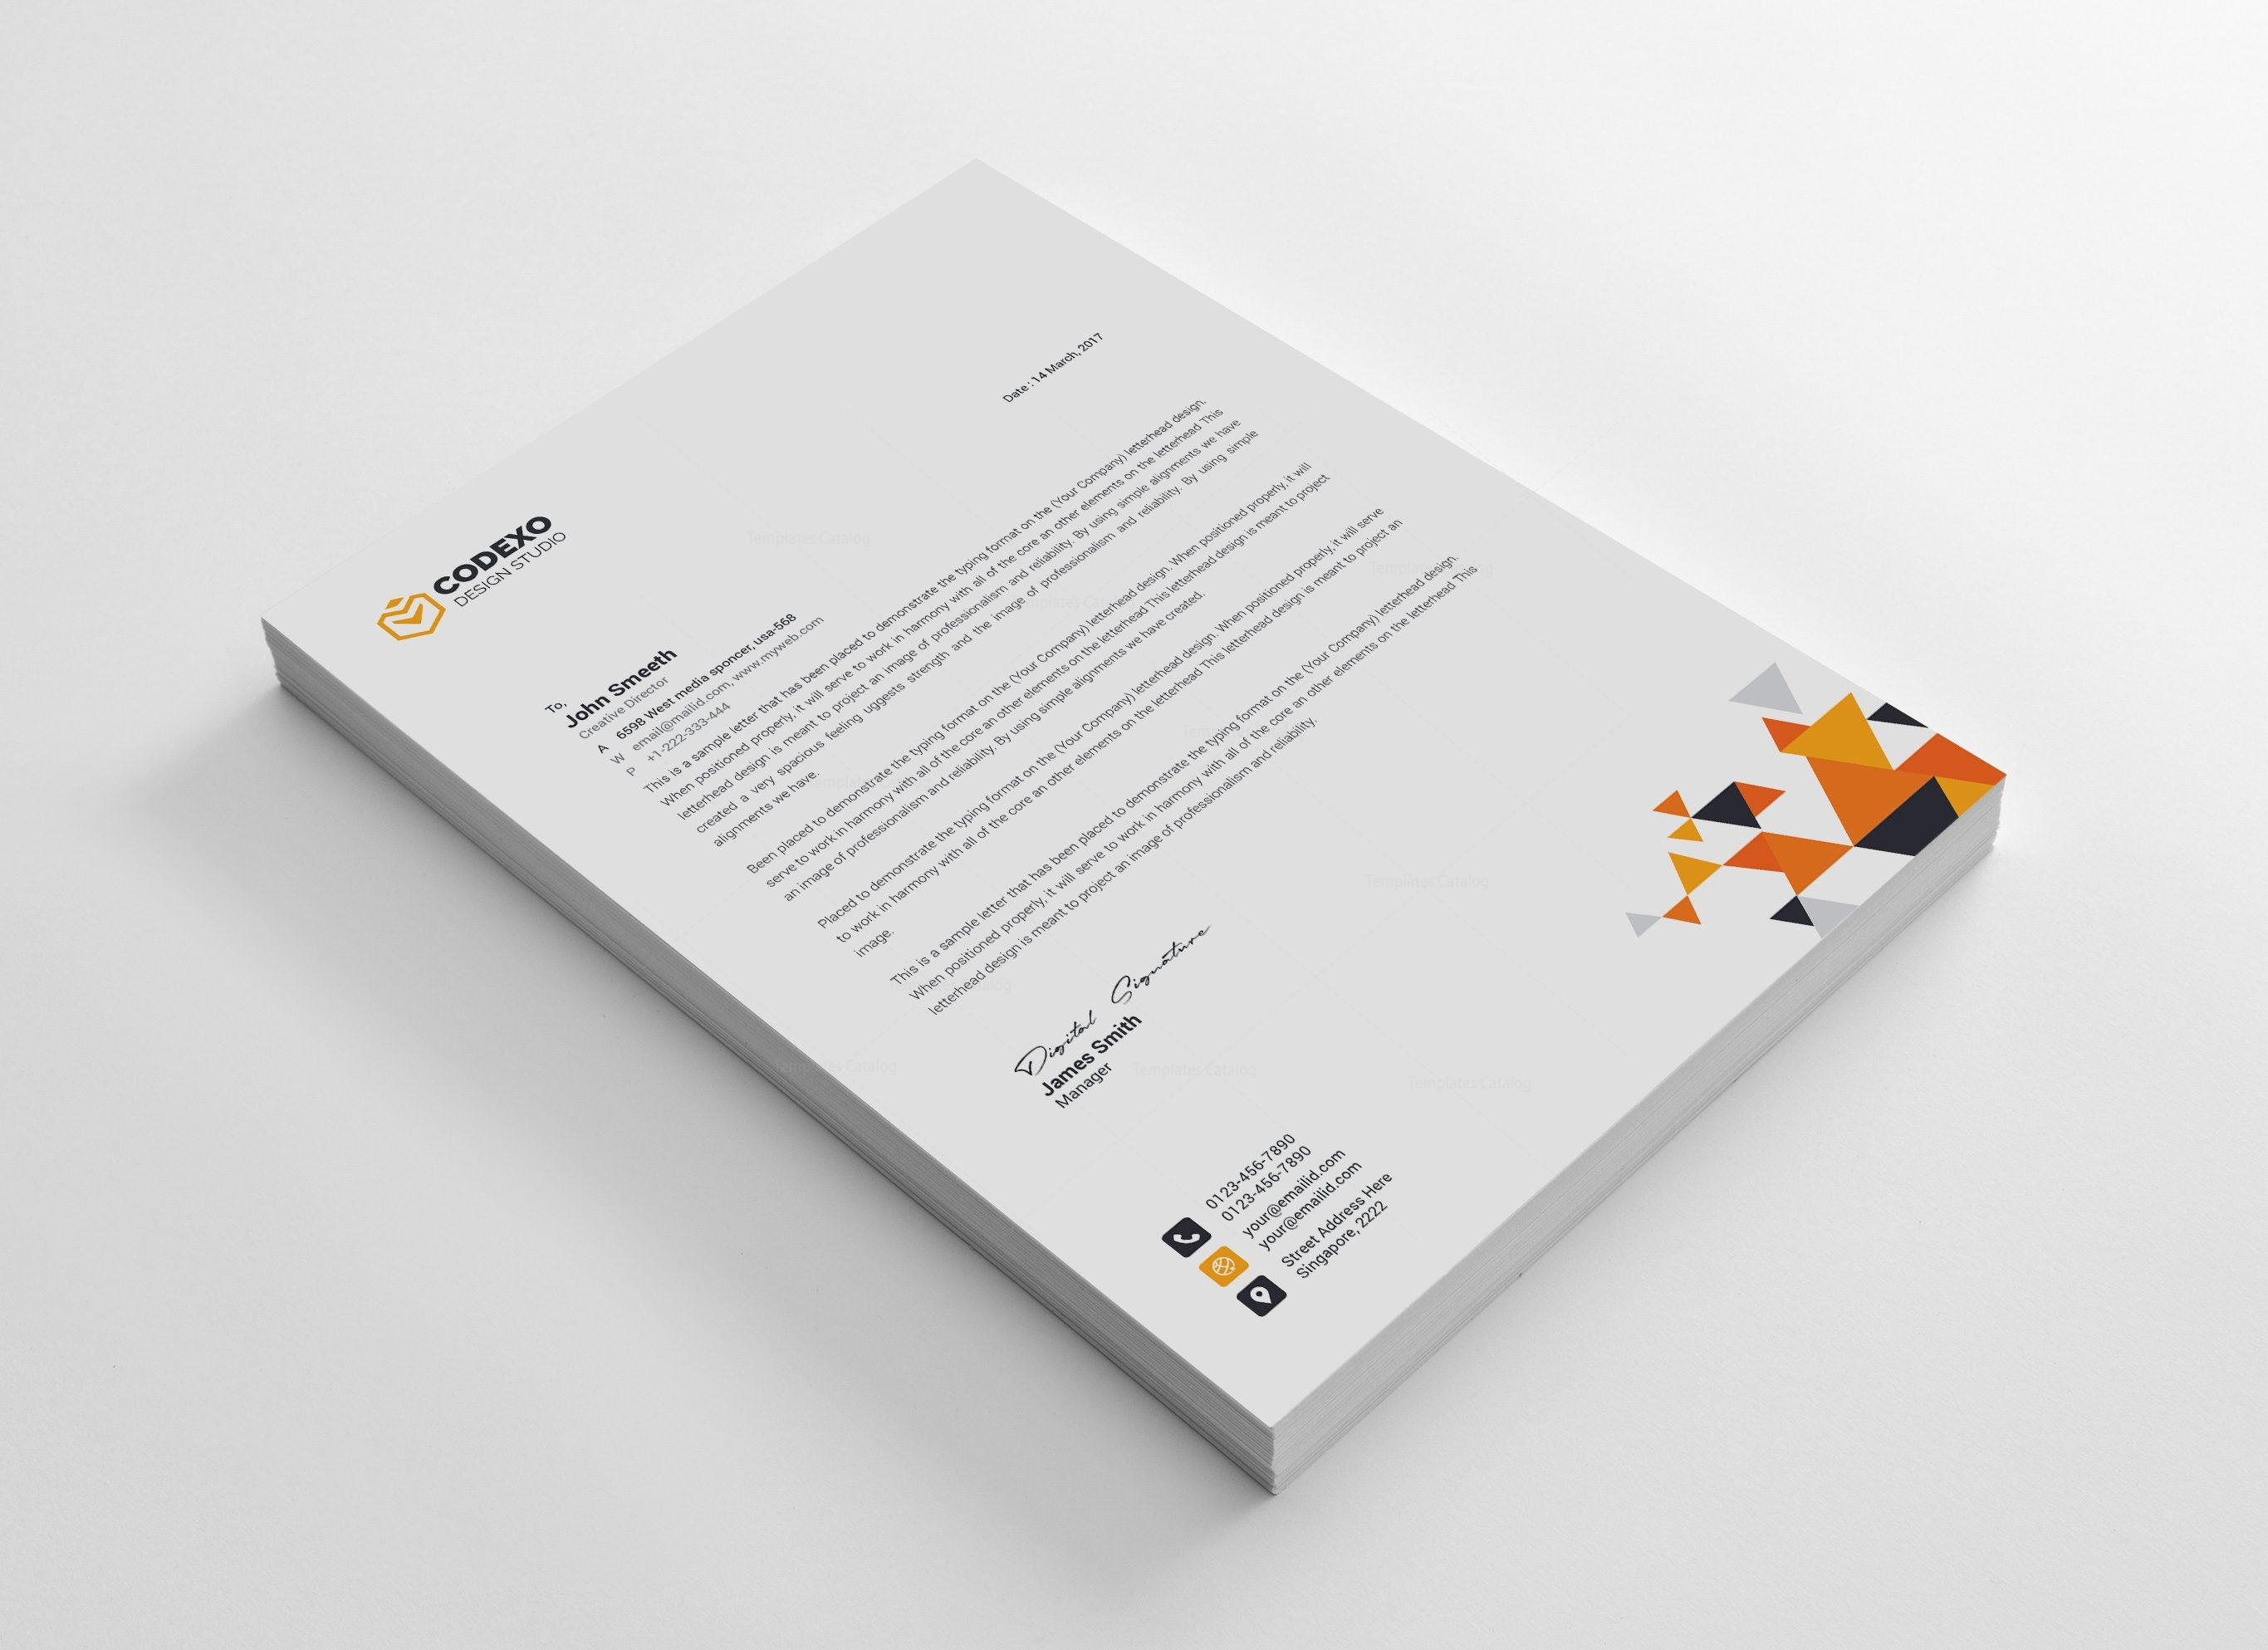 Company letterhead template images template design ideas company letterhead templates onweoinnovate company letterhead templates maxwellsz thecheapjerseys Gallery